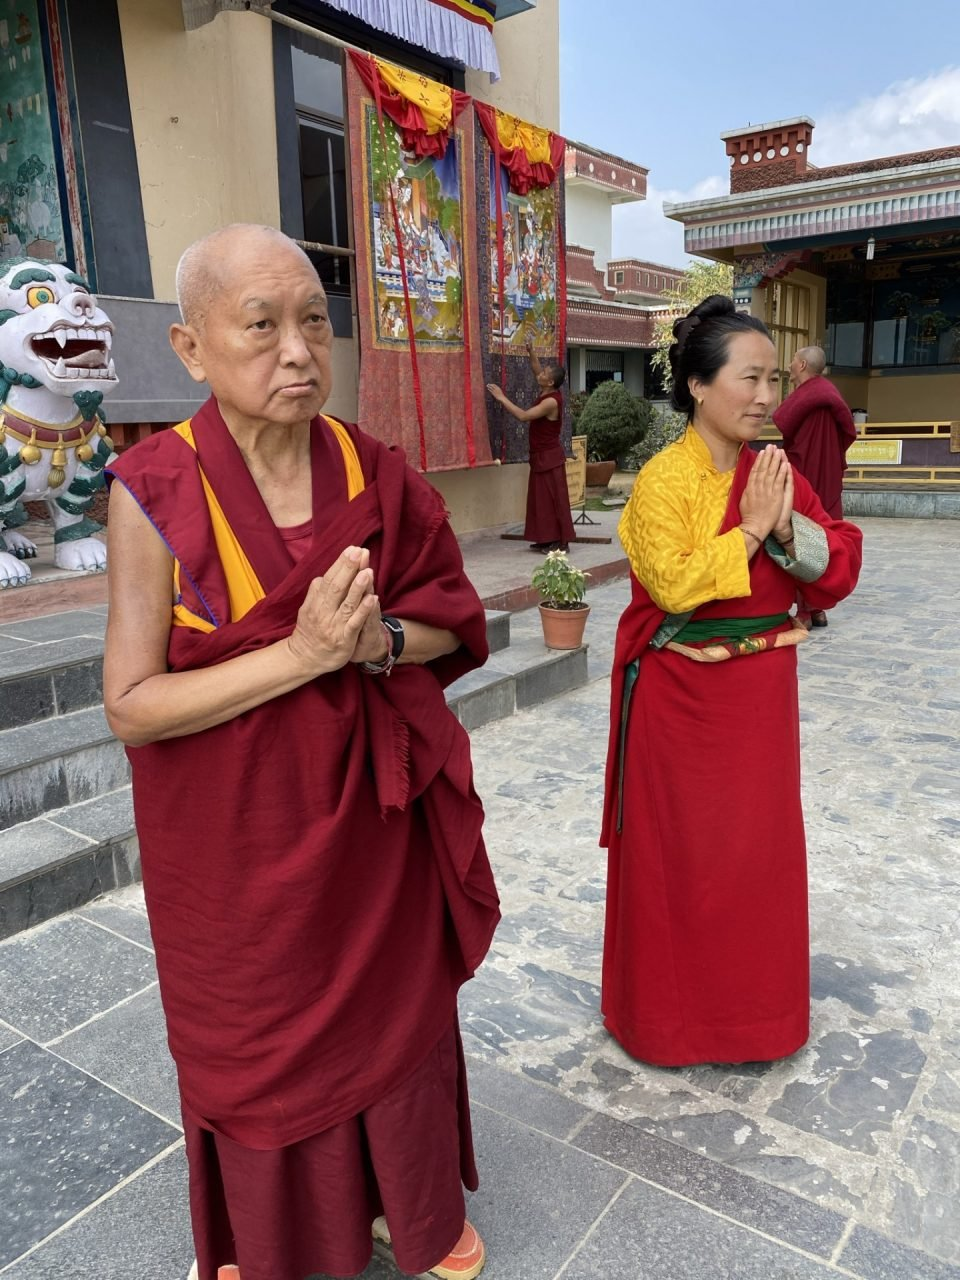 Lama Zopa Rinpoche and Kharo-la standing in front of large Tara thangkas with hands in prayer mudra.